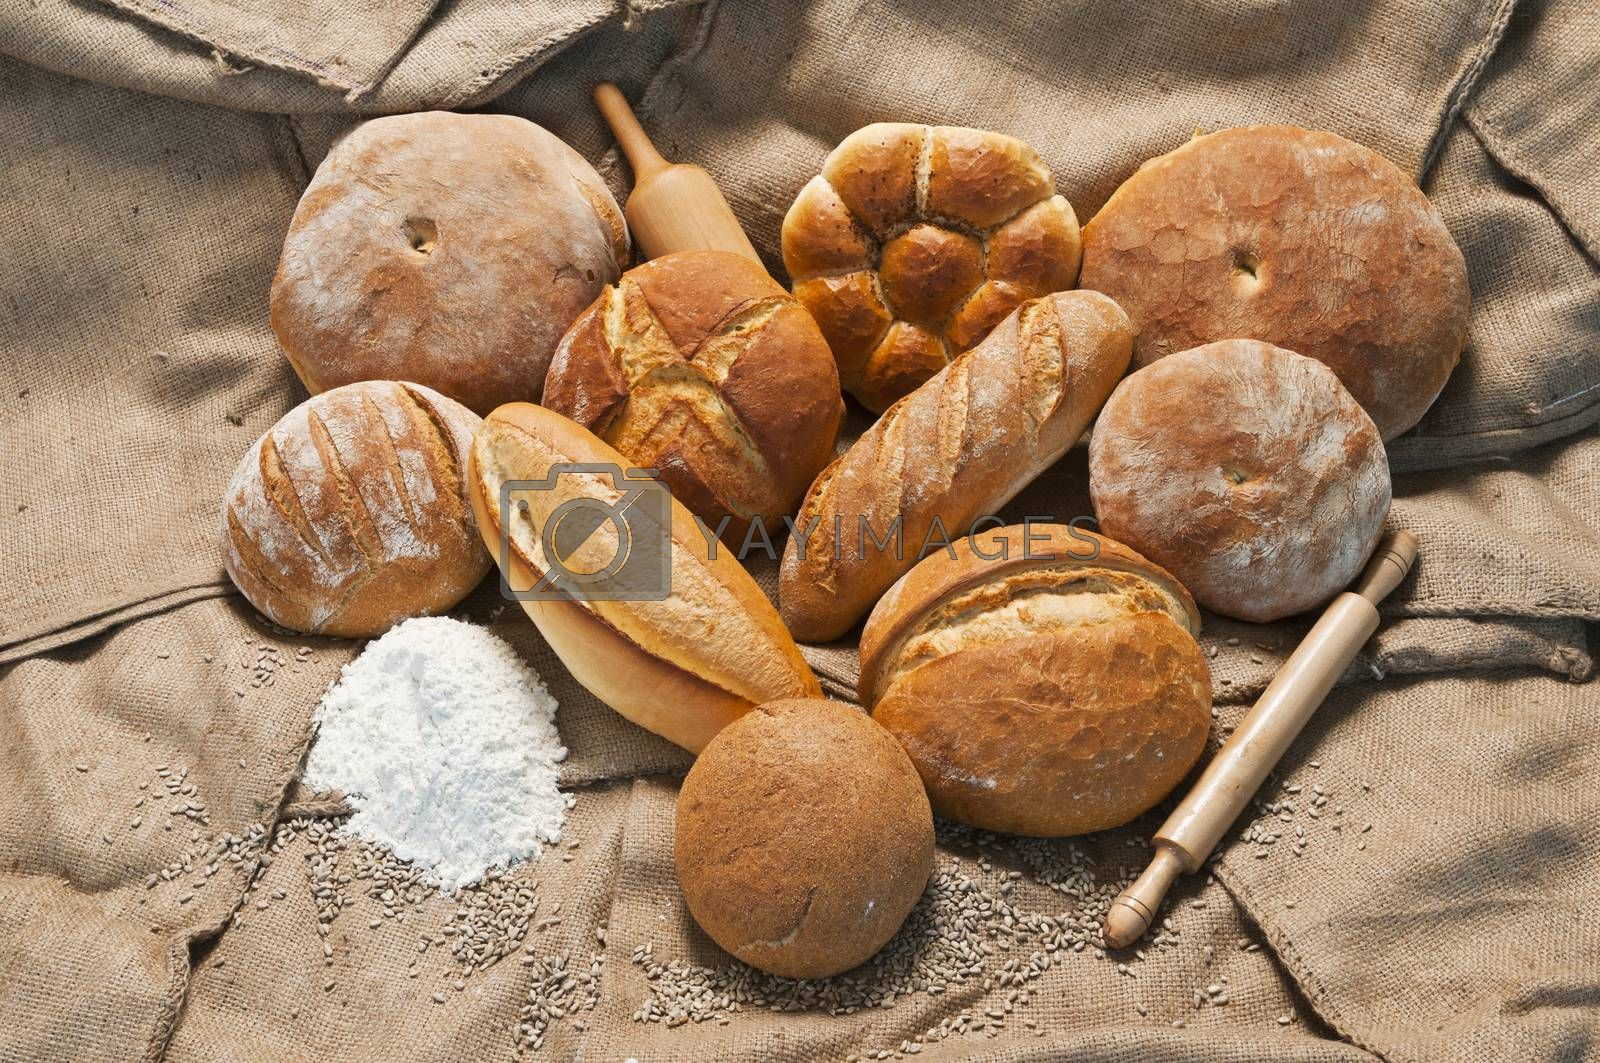 Royalty free image of bread by emirkoo